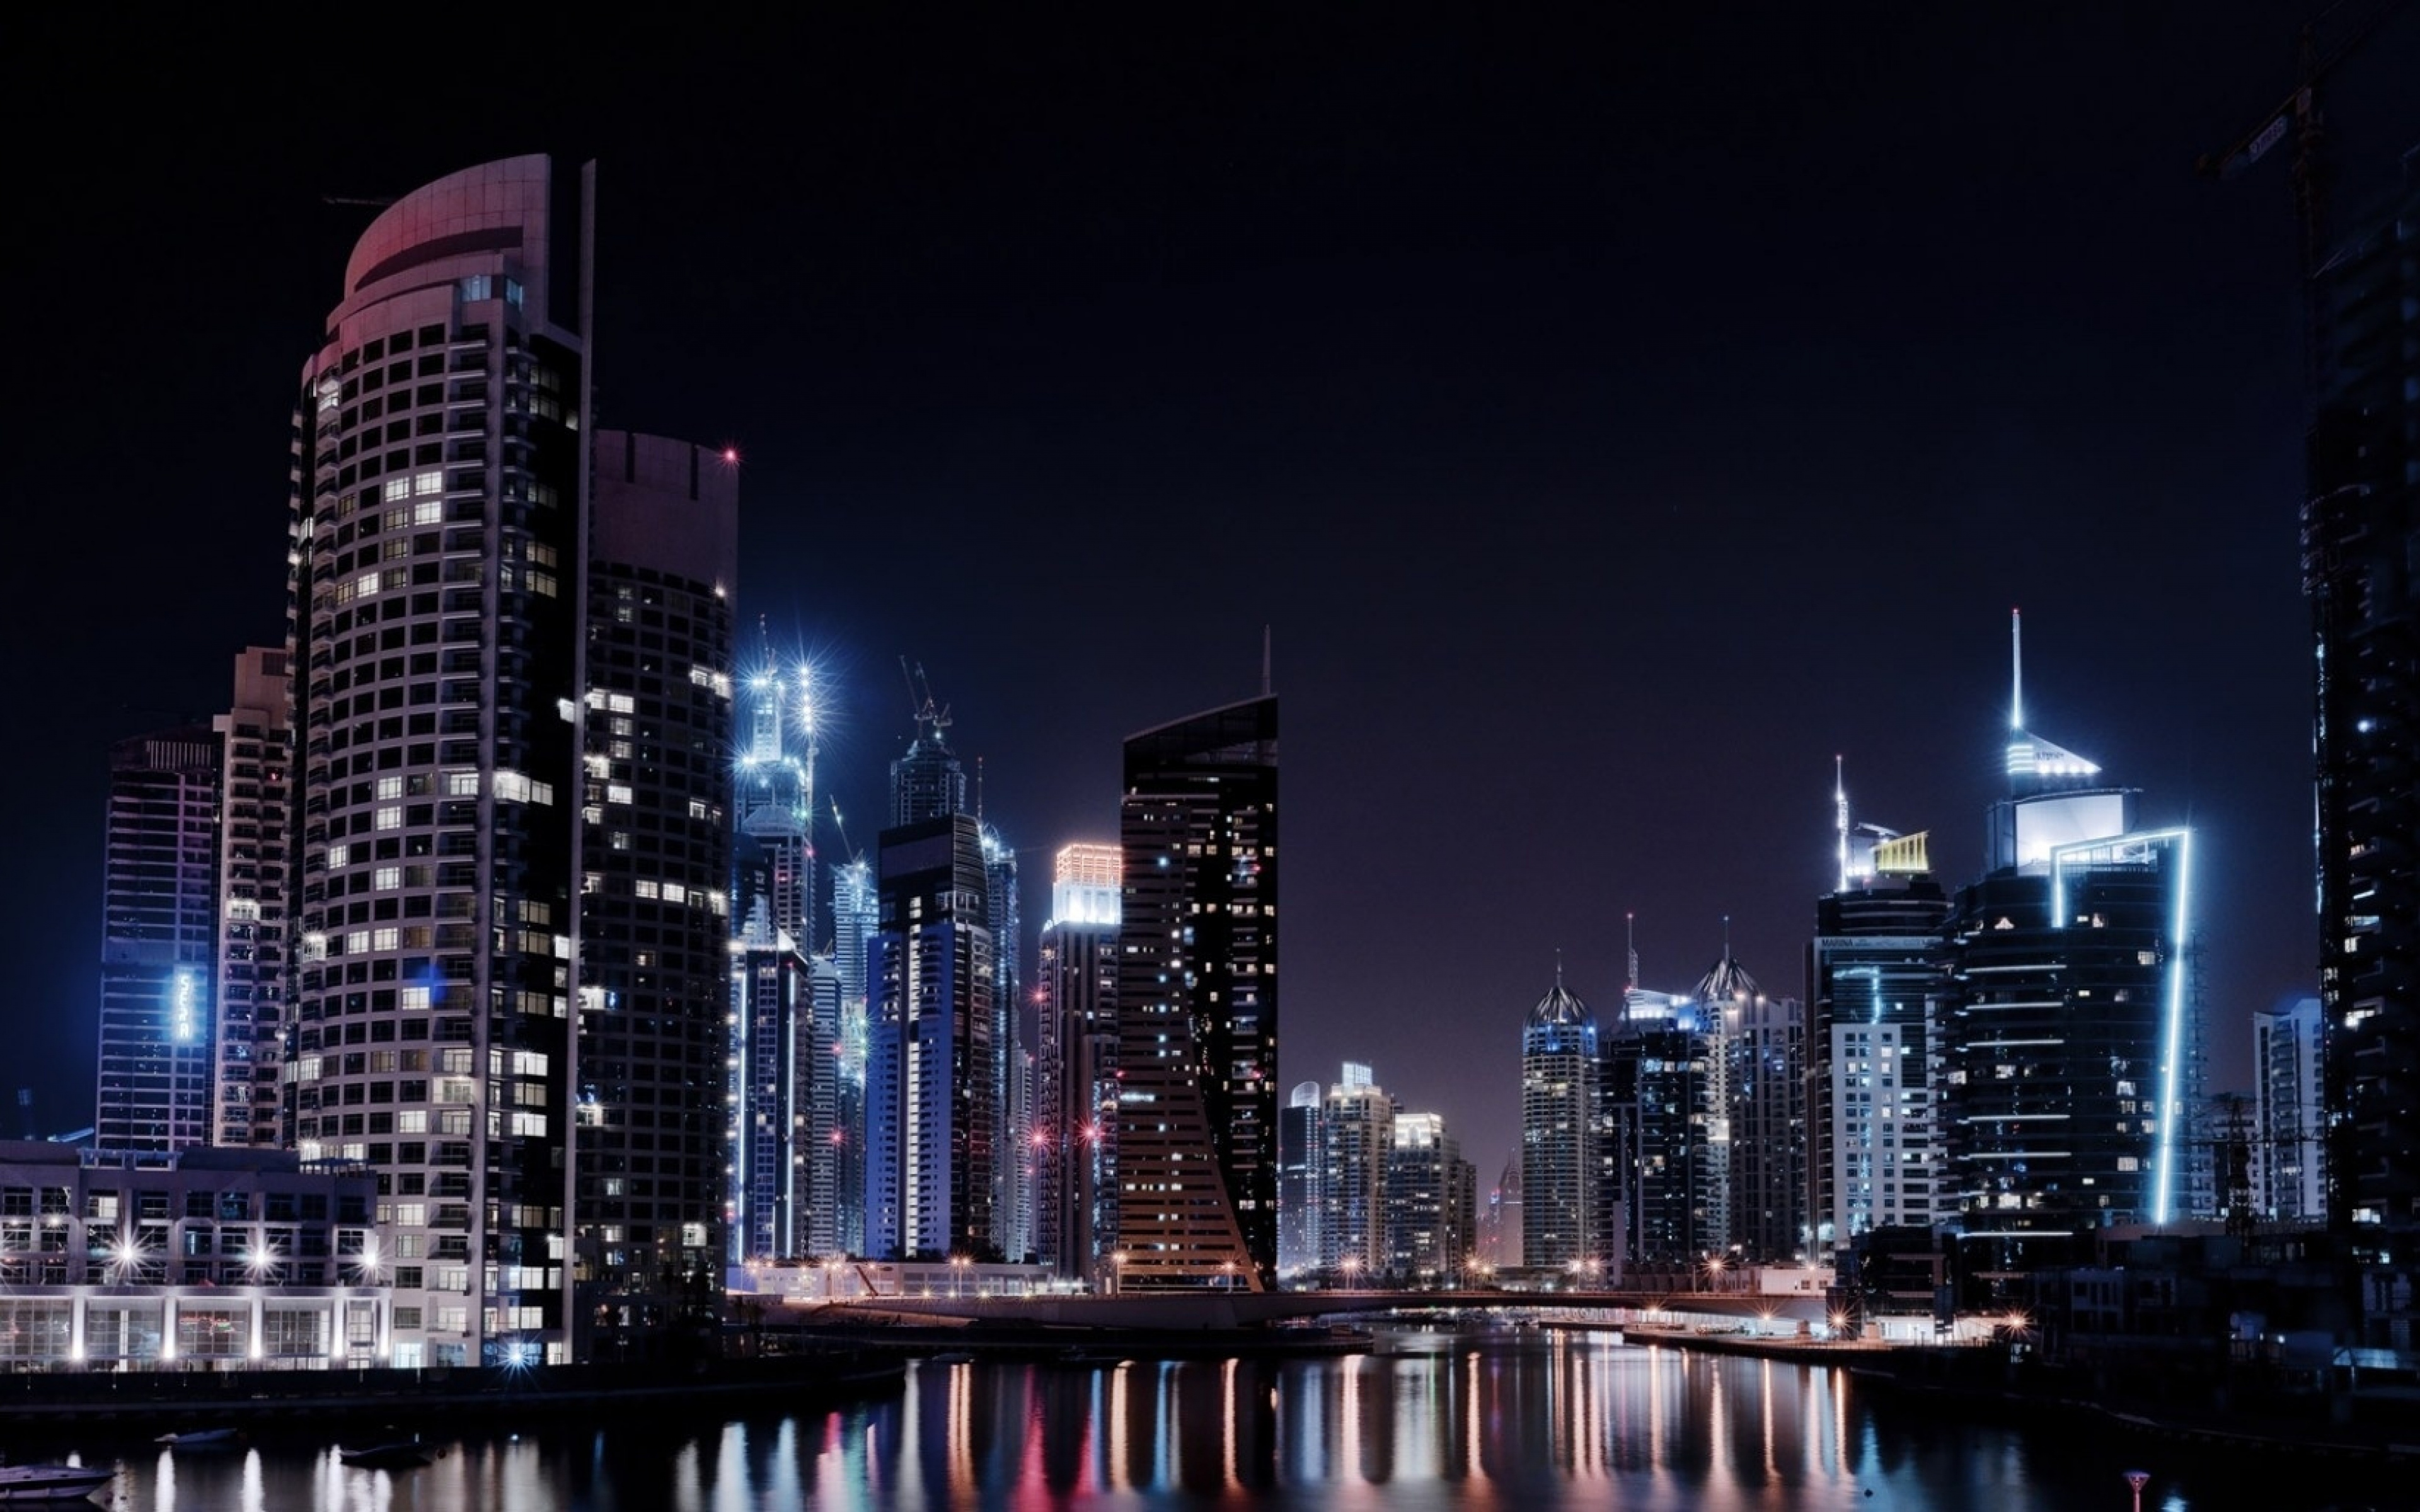 4k night city wallpapers high quality download free